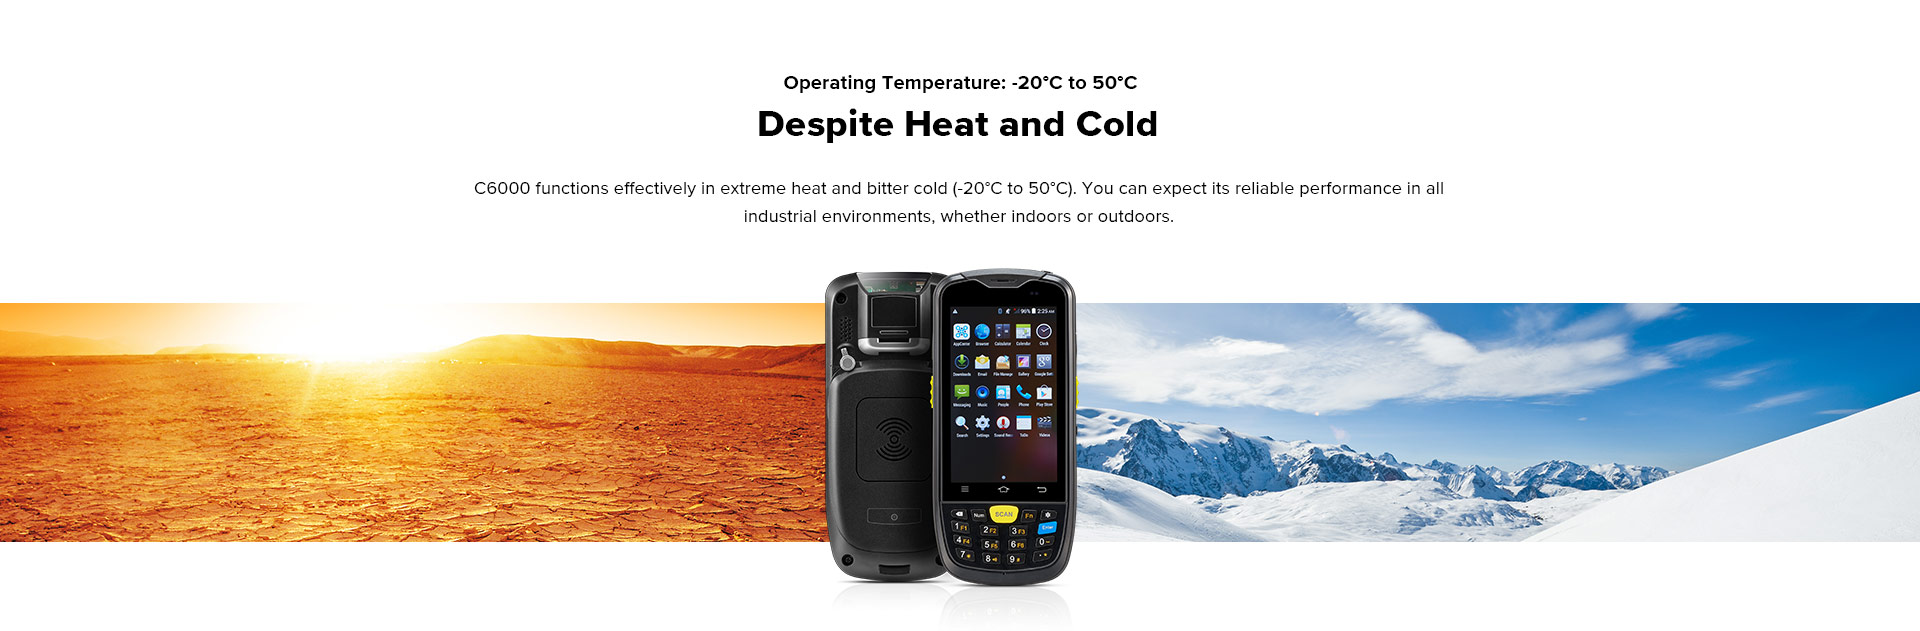 C6000 Rugged Handheld Computer Android - Temperature range